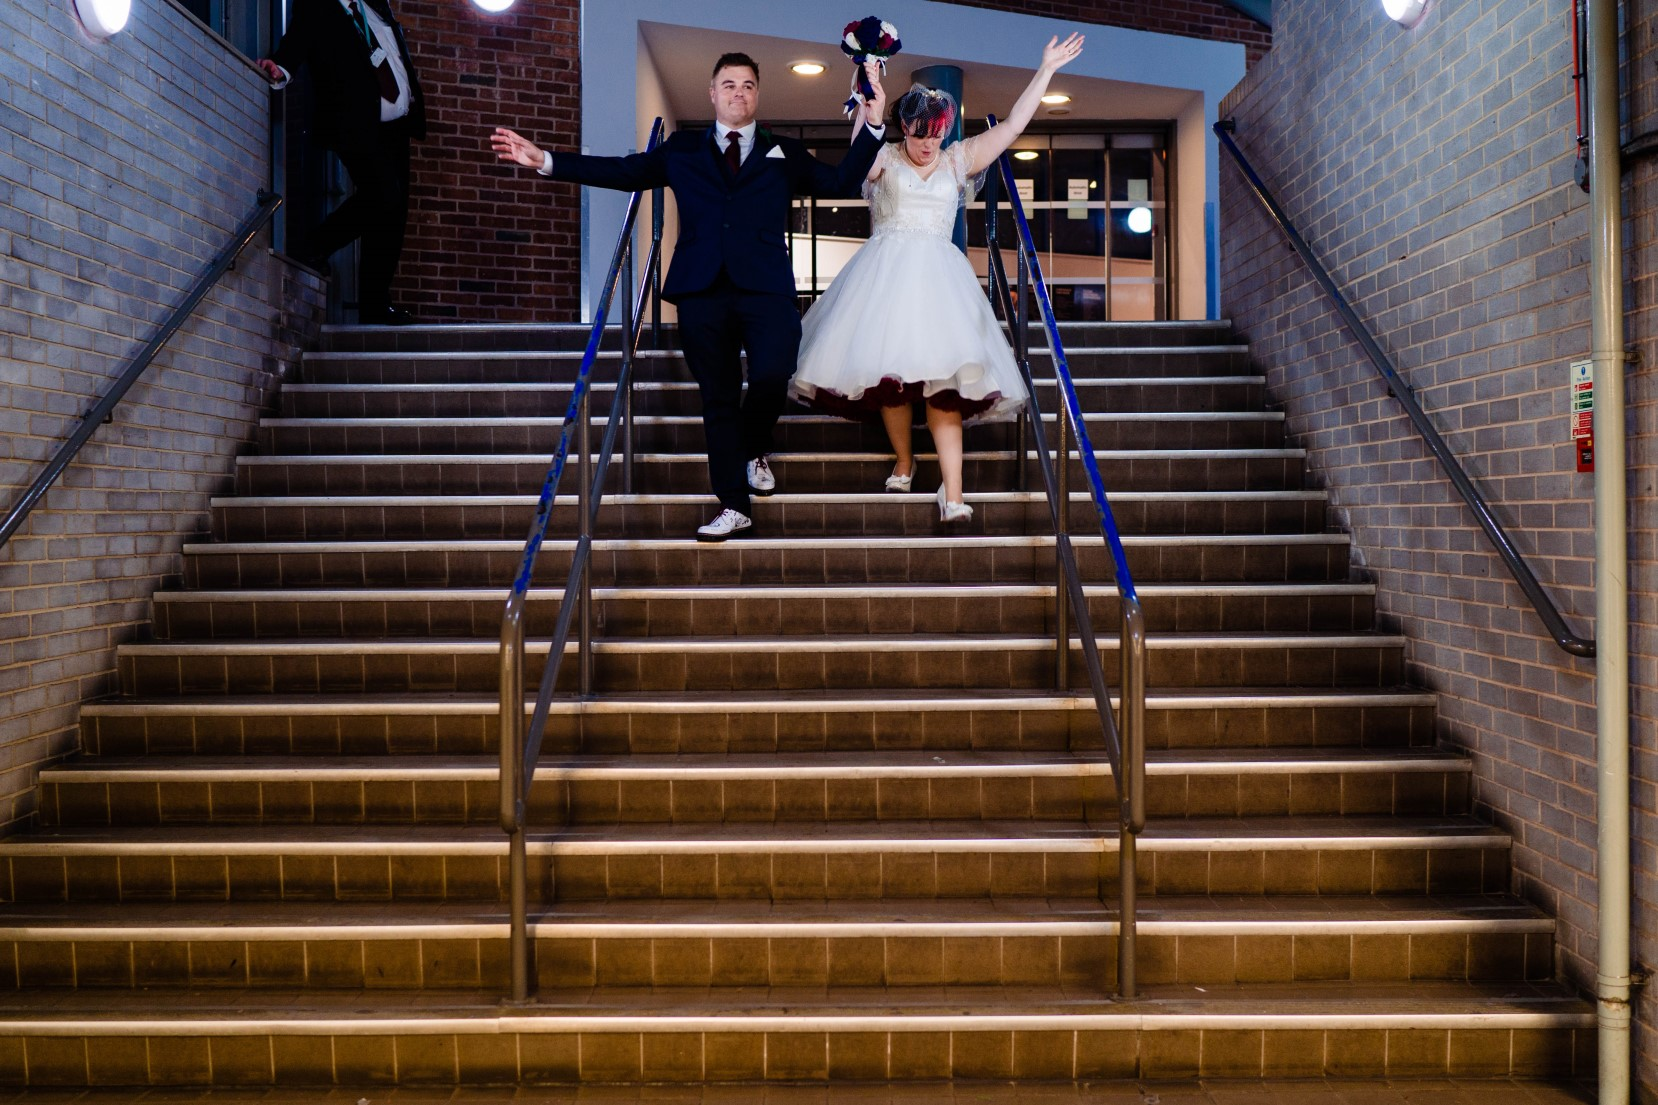 Industrial Railway Wedding- Vicki Clayson Photography- Unconventional Wedding- Unique Wedding Venue- just married